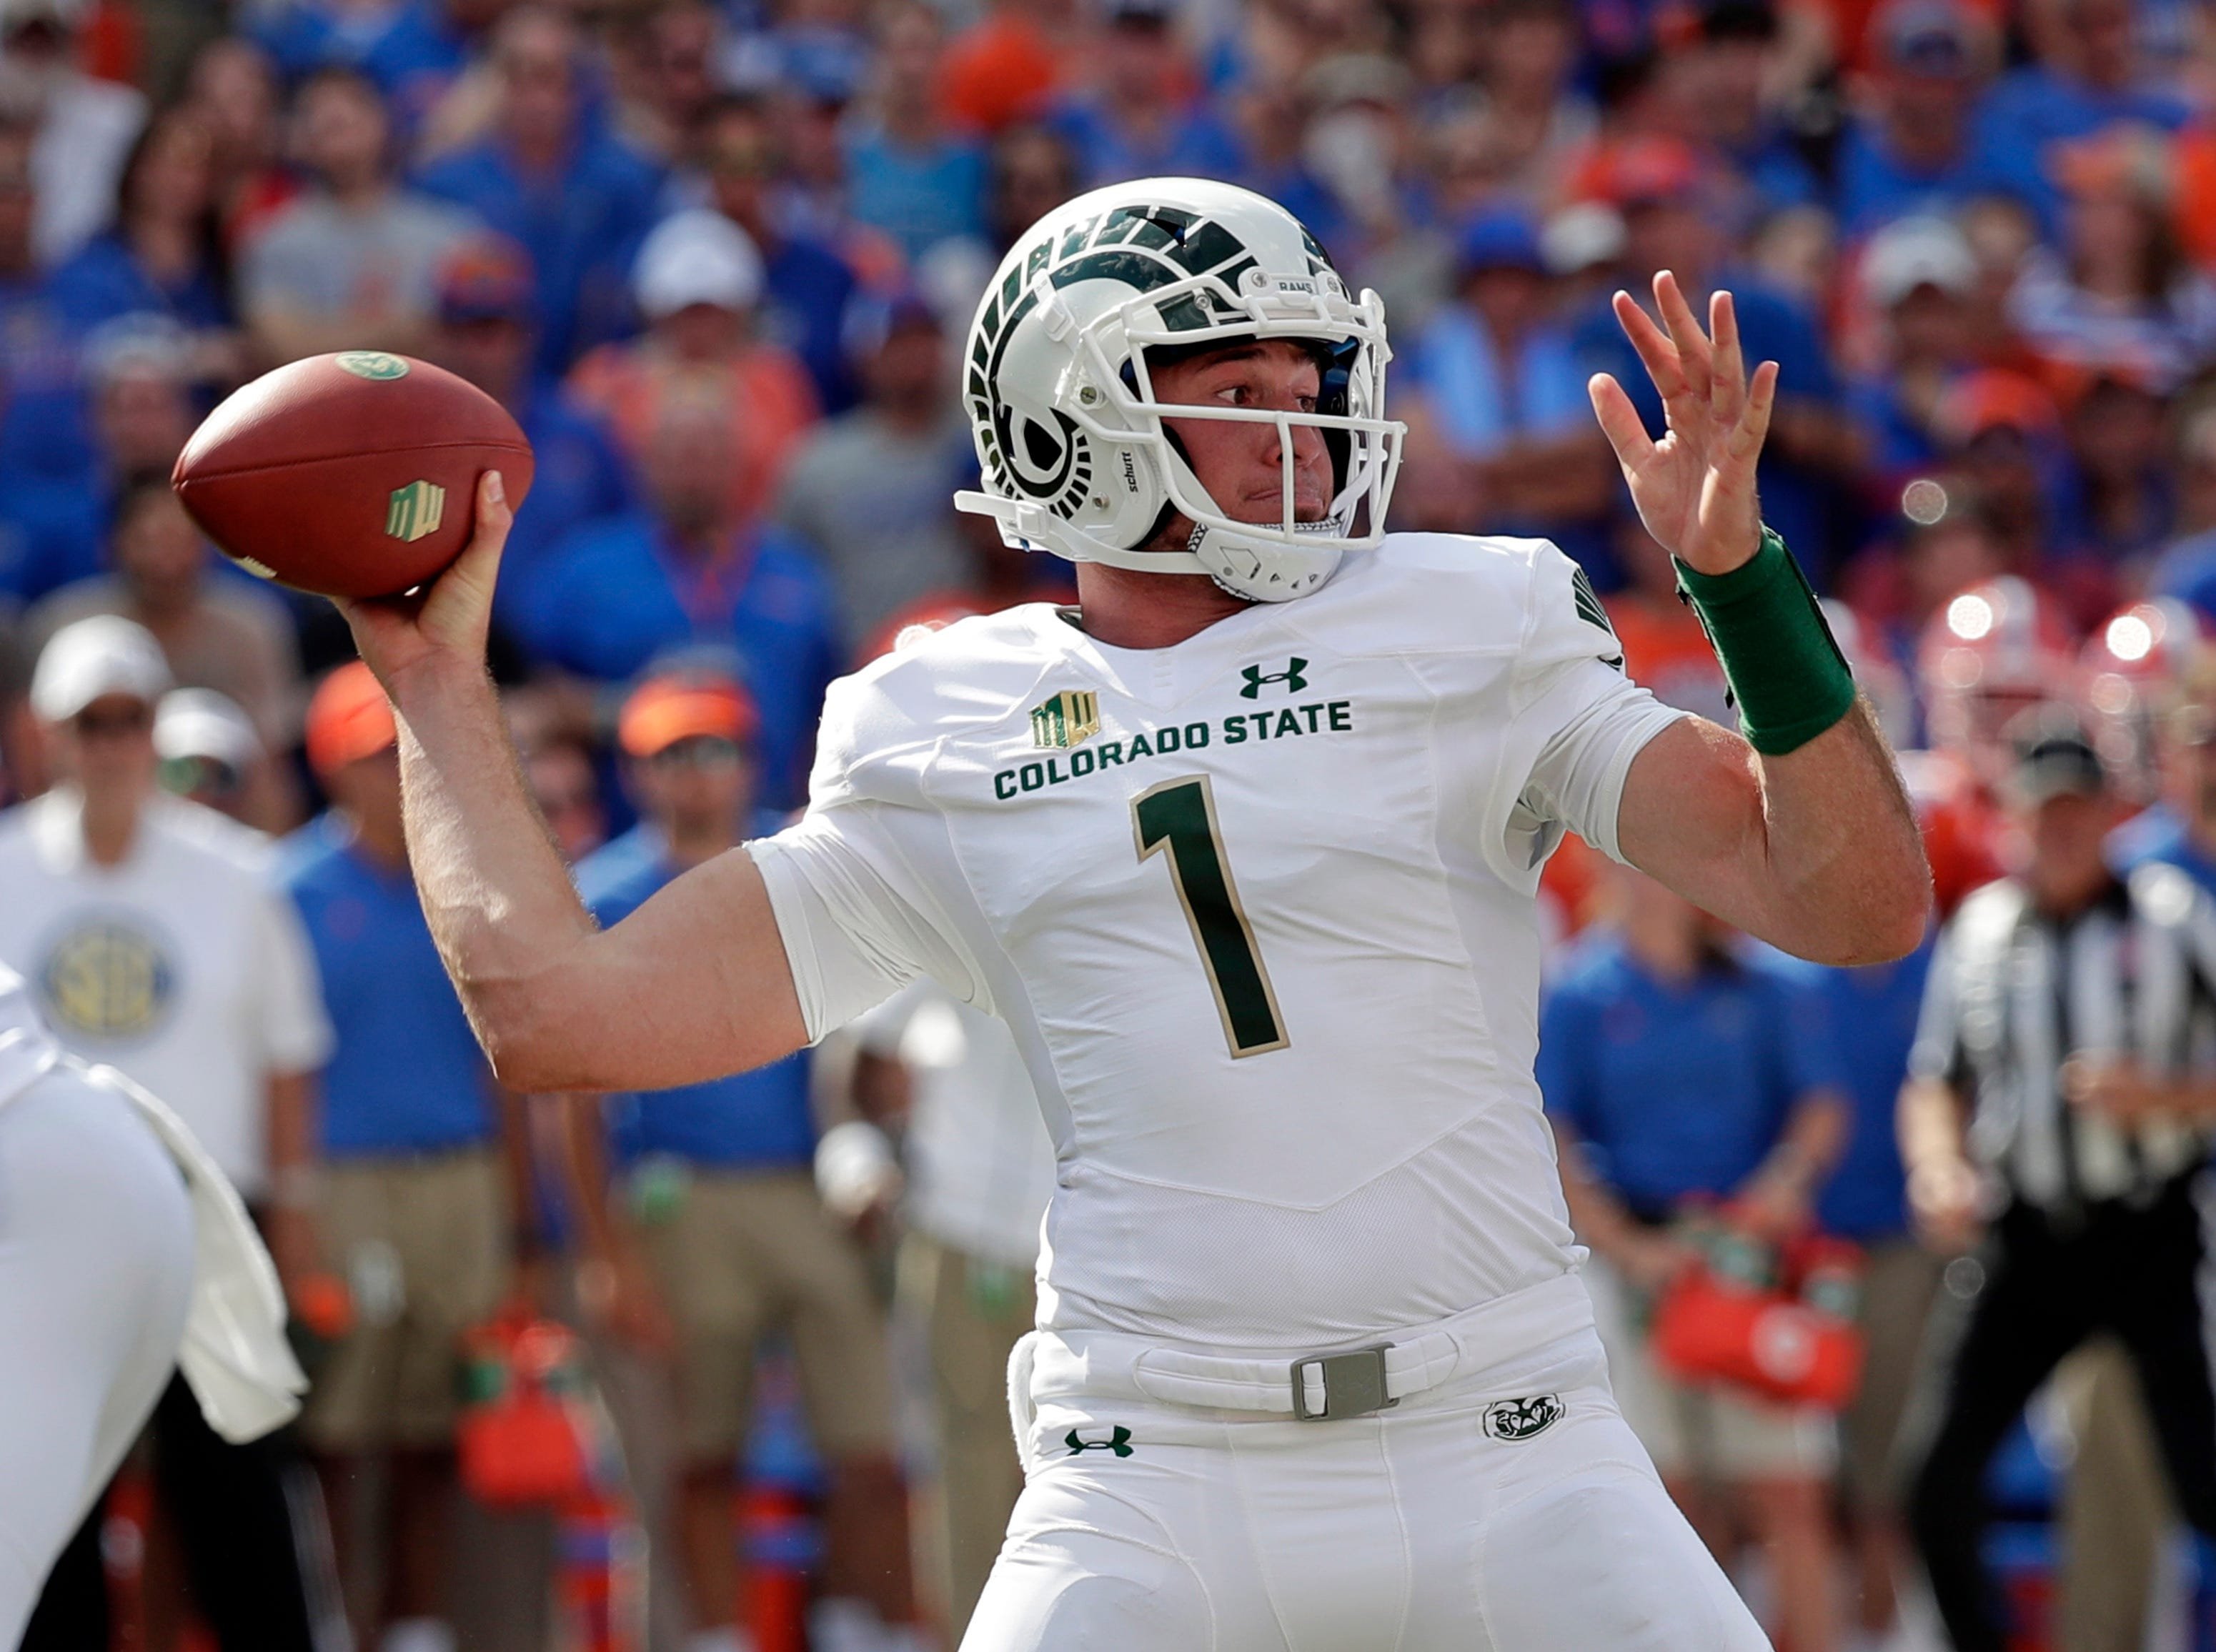 Colorado State quarterback K.J. Carta-Samuels (1) throws a pass against Florida during the first half of an NCAA college football game, Saturday, Sept. 15, 2018, in Gainesville, Fla. (AP Photo/John Raoux)